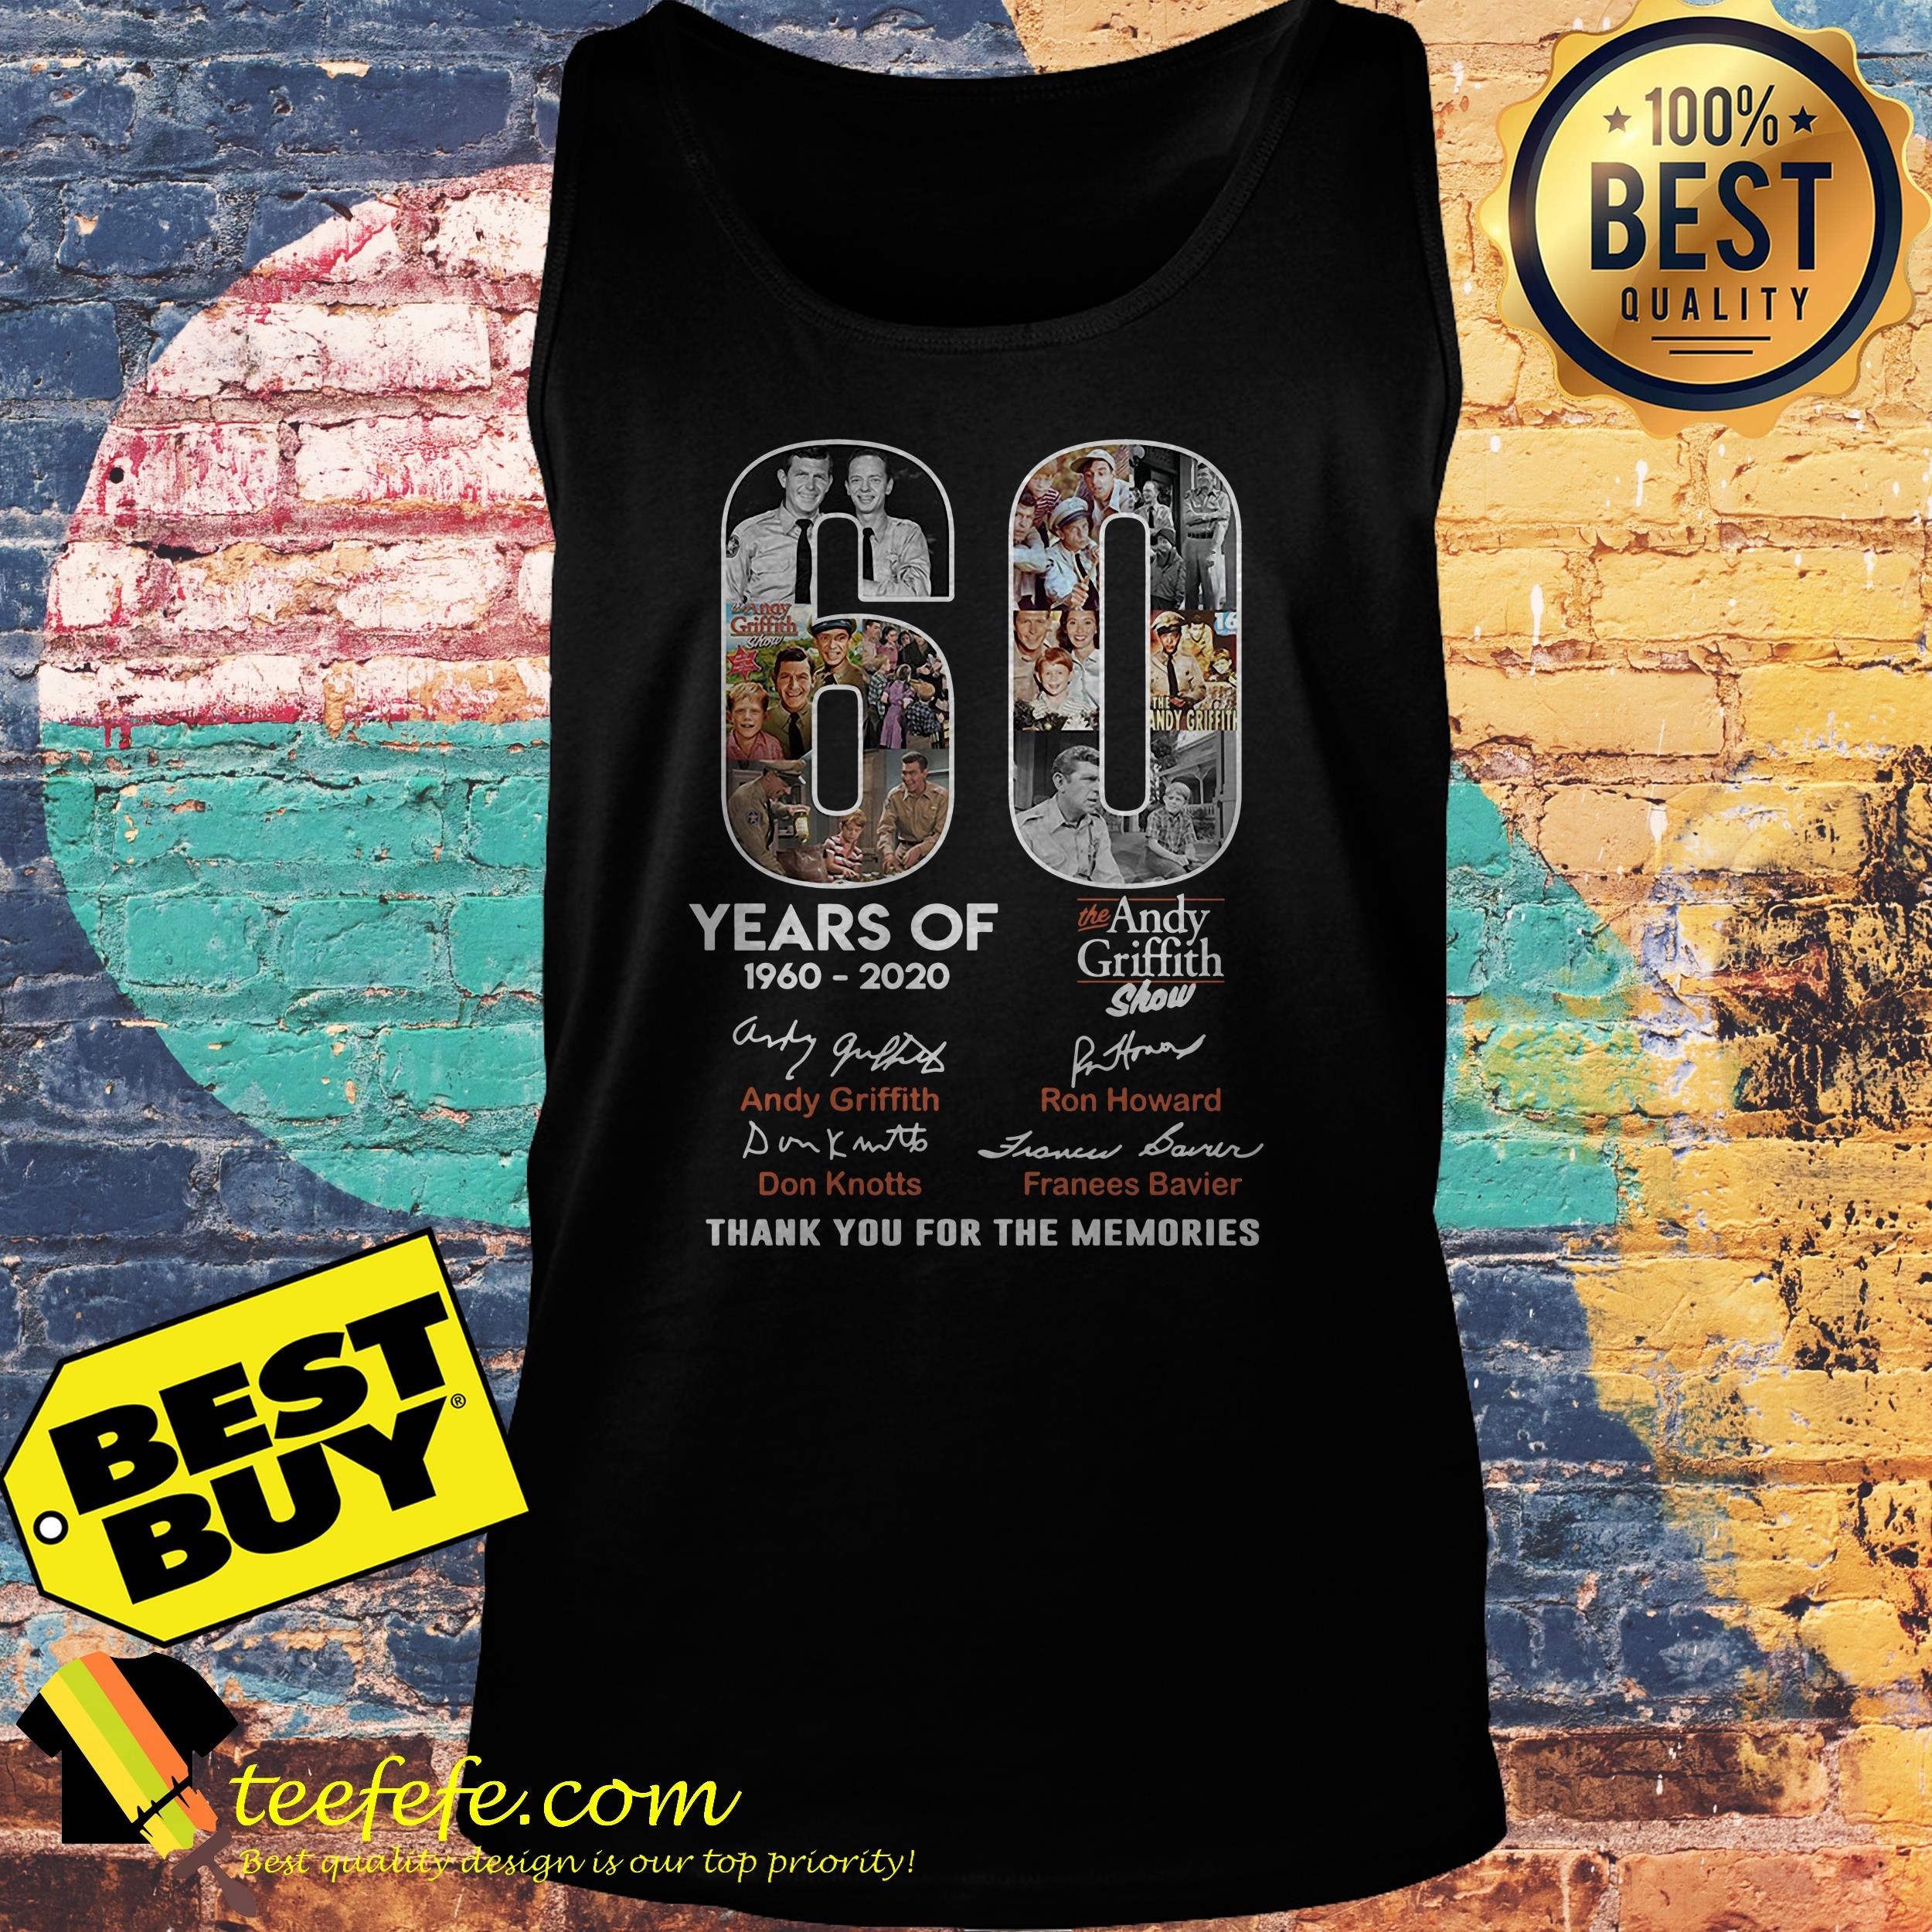 60 Years of the Andy Griffith Show 1960-2020 thank you for the memories tank top